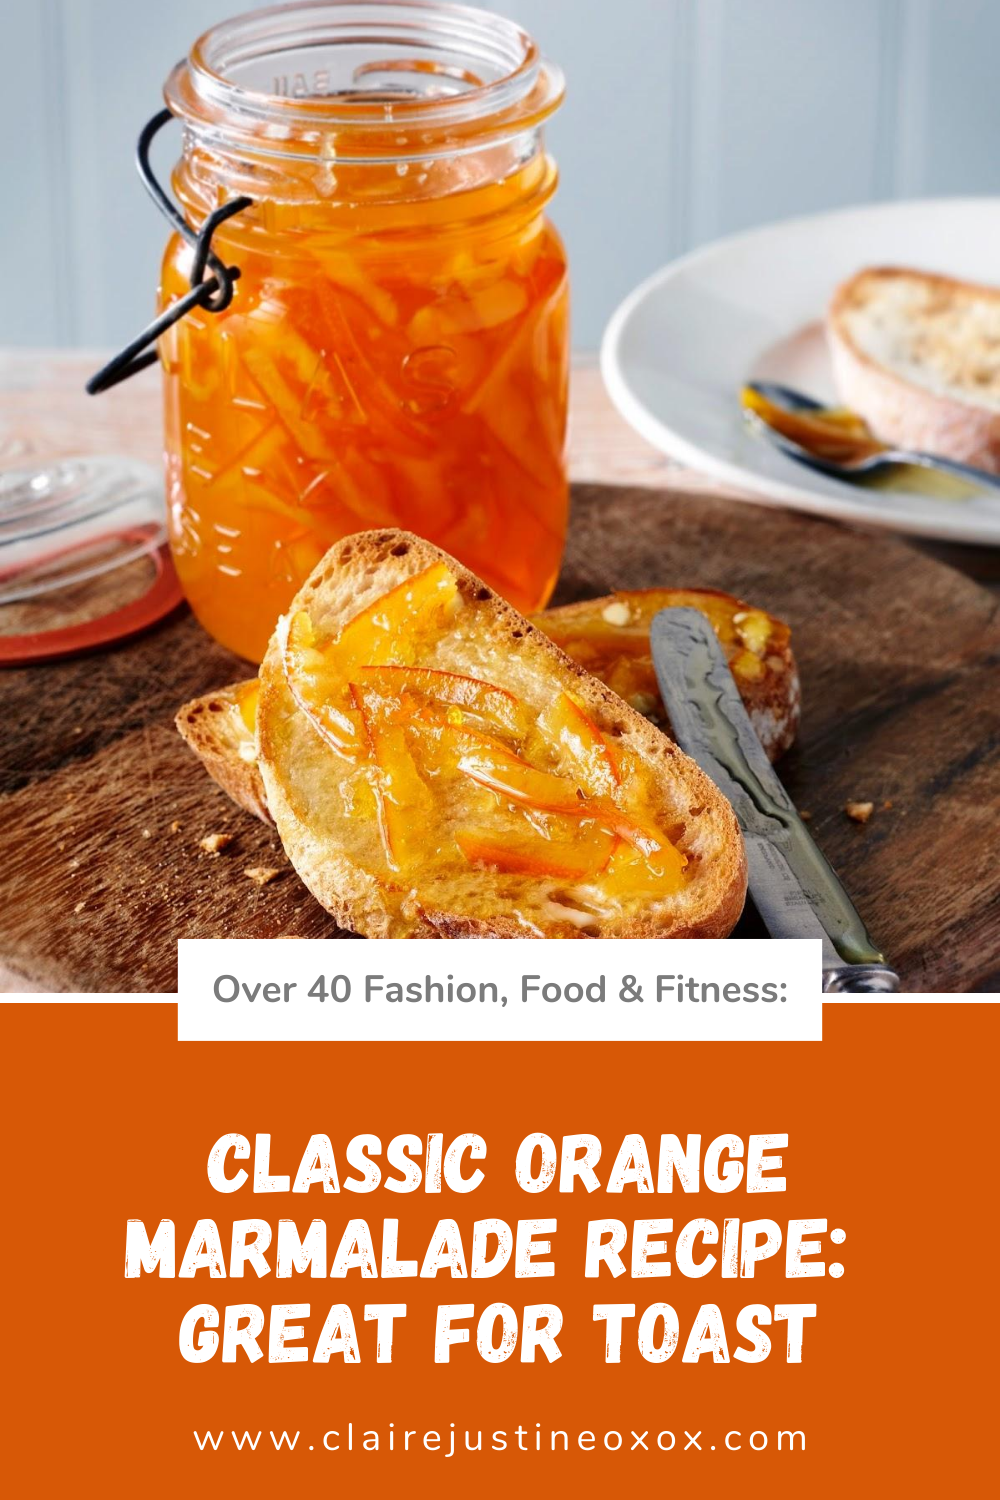 Classic Orange Marmalade: Great For Toast